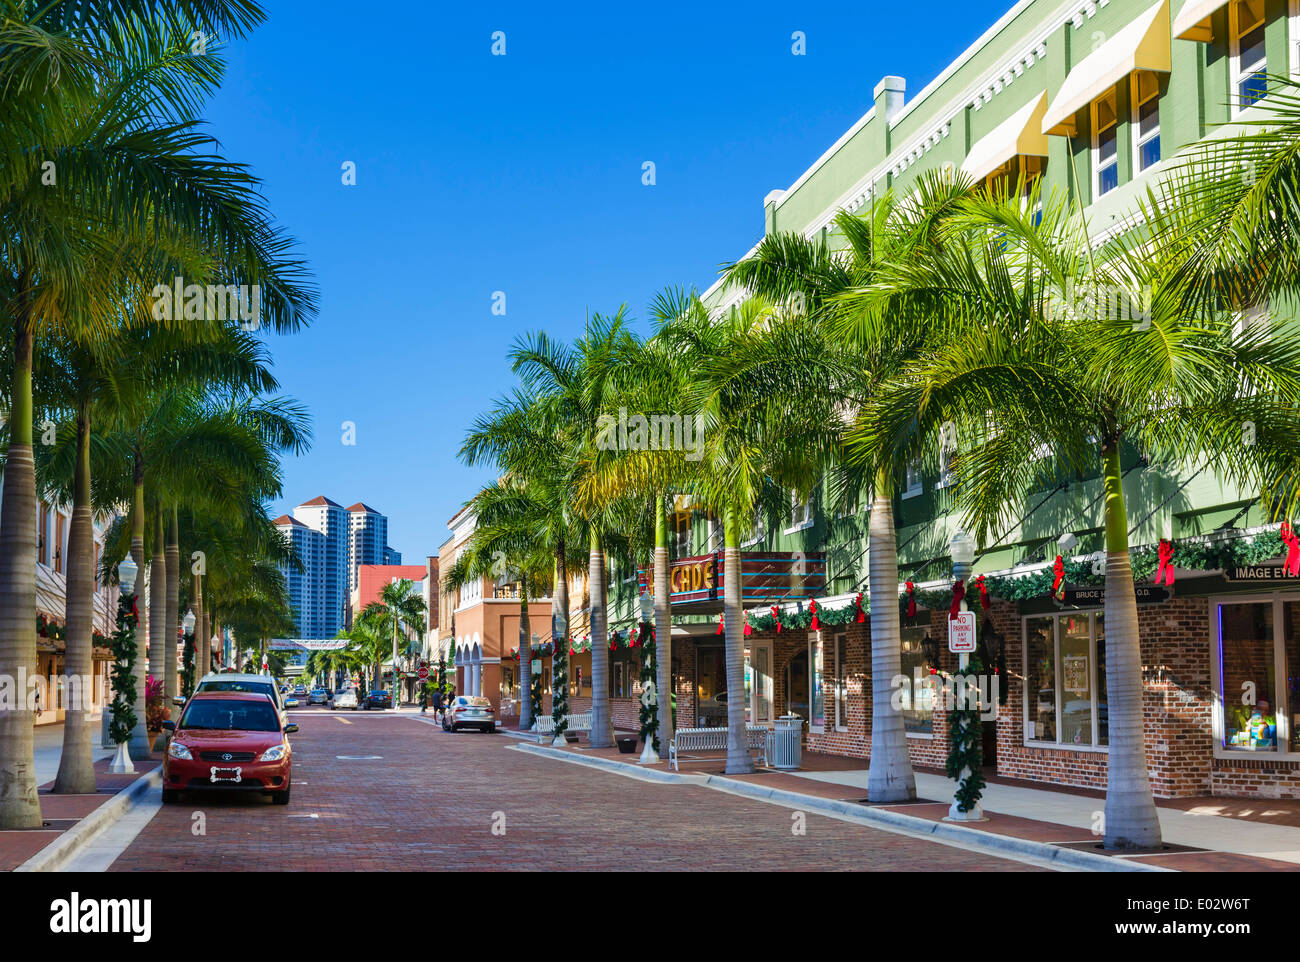 florida chat city